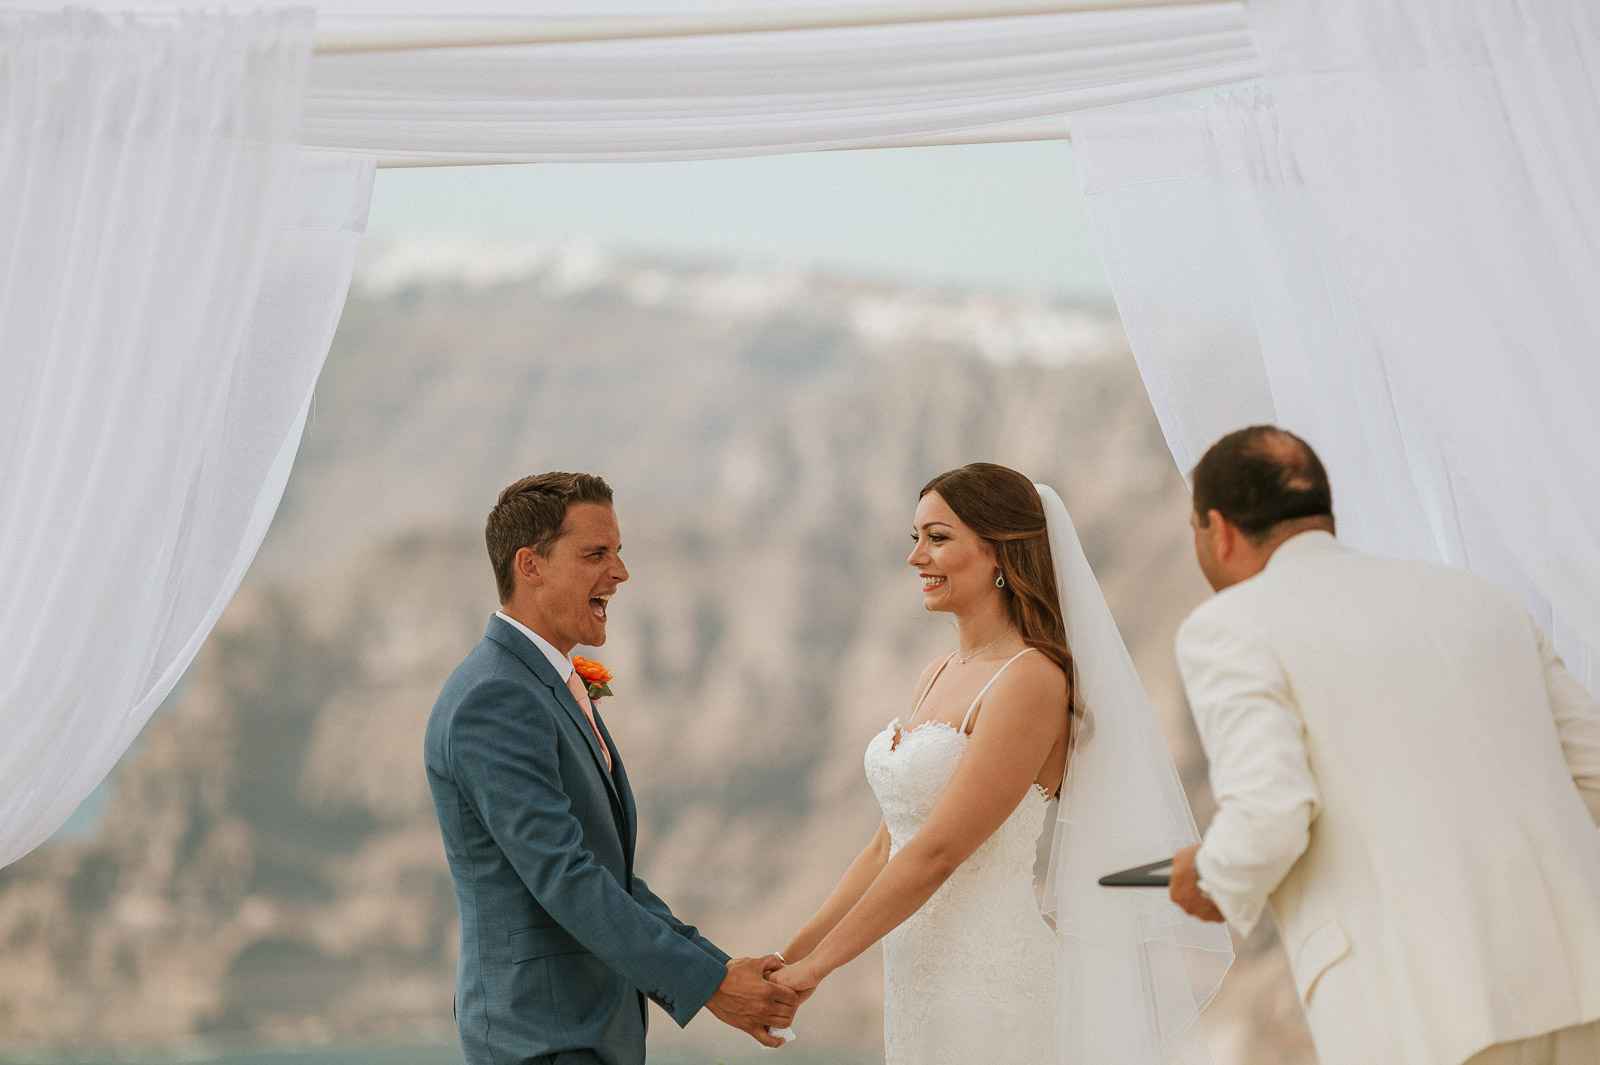 Santorini-Wedding-Photographer-Greece-Destination-Weddings-Mait-Juriado-M&J-Studios-065